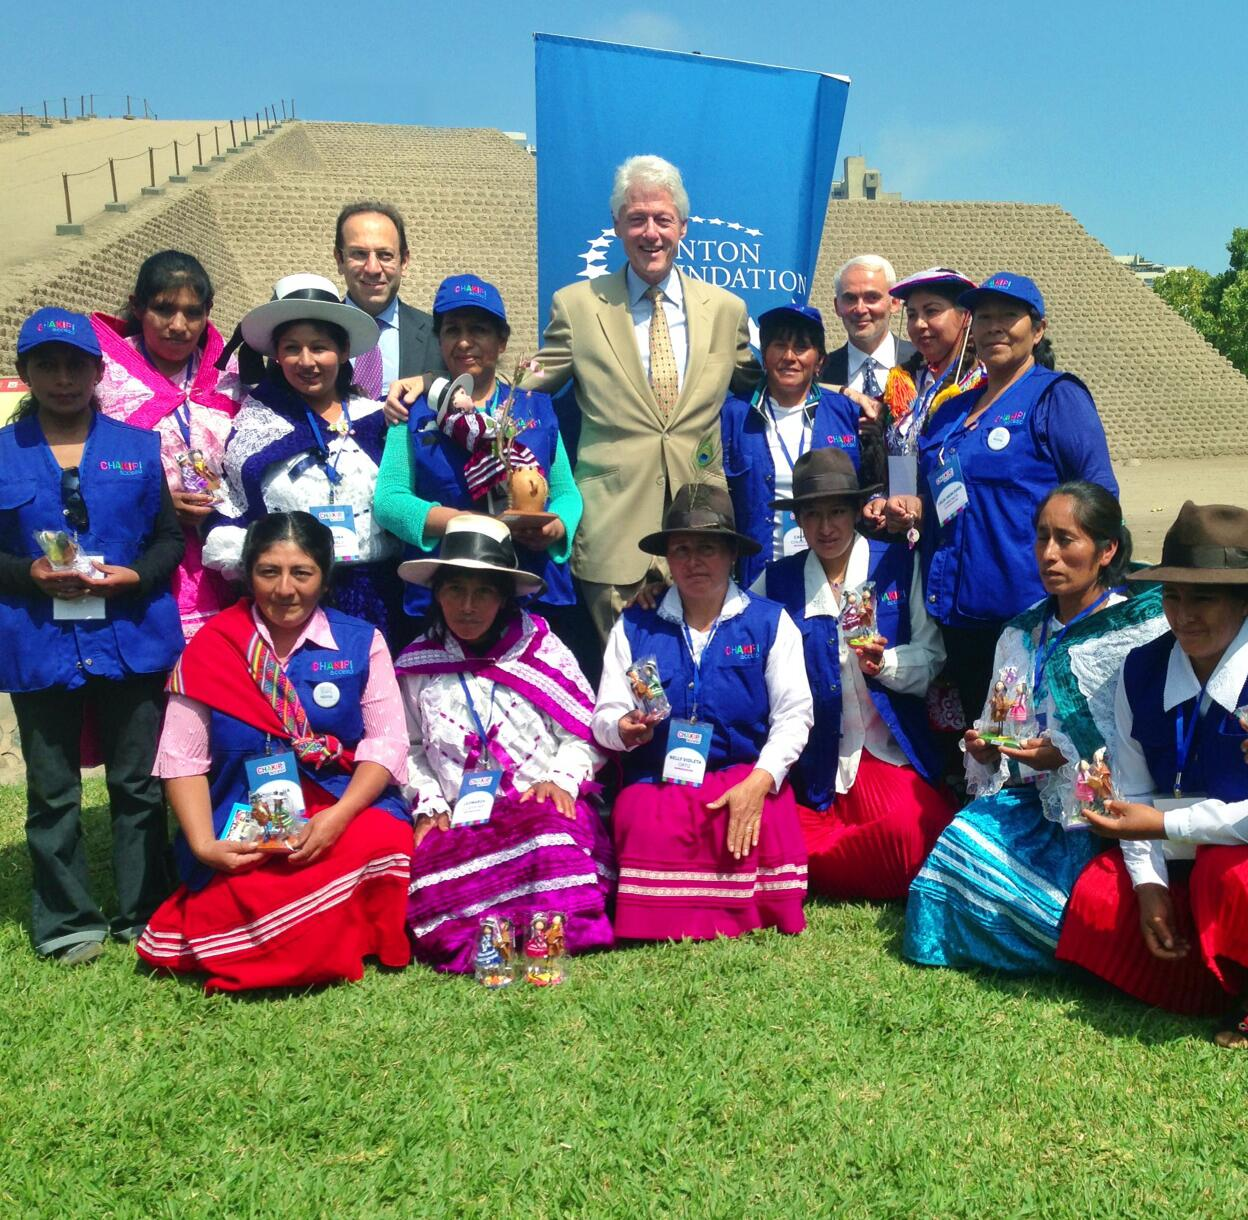 Proud that @ClintonFdn work in Peru will help women entrepreneurs increase their incomes & support their families. http://t.co/SuRrfQIw8d